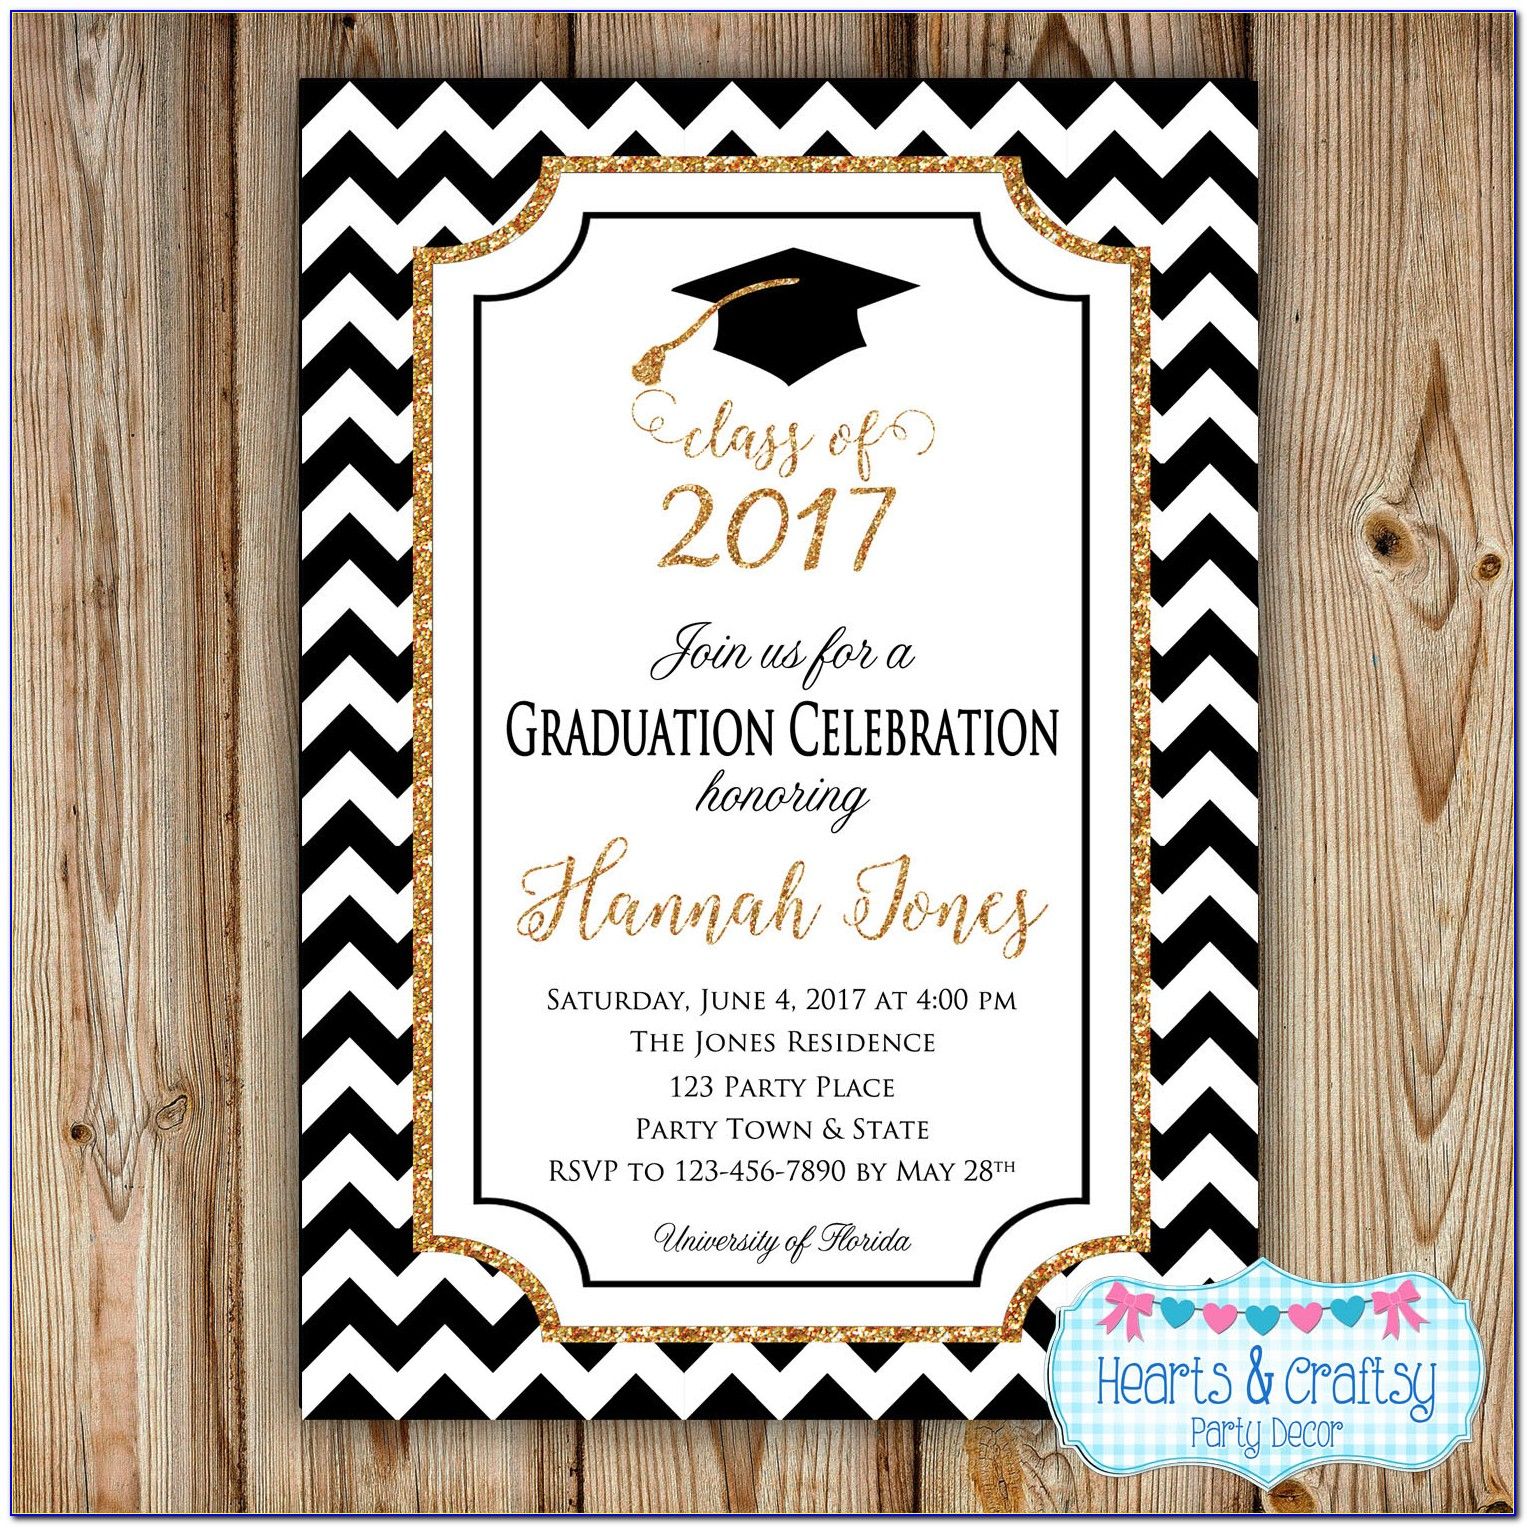 Graduation Party Invitation Free Templates